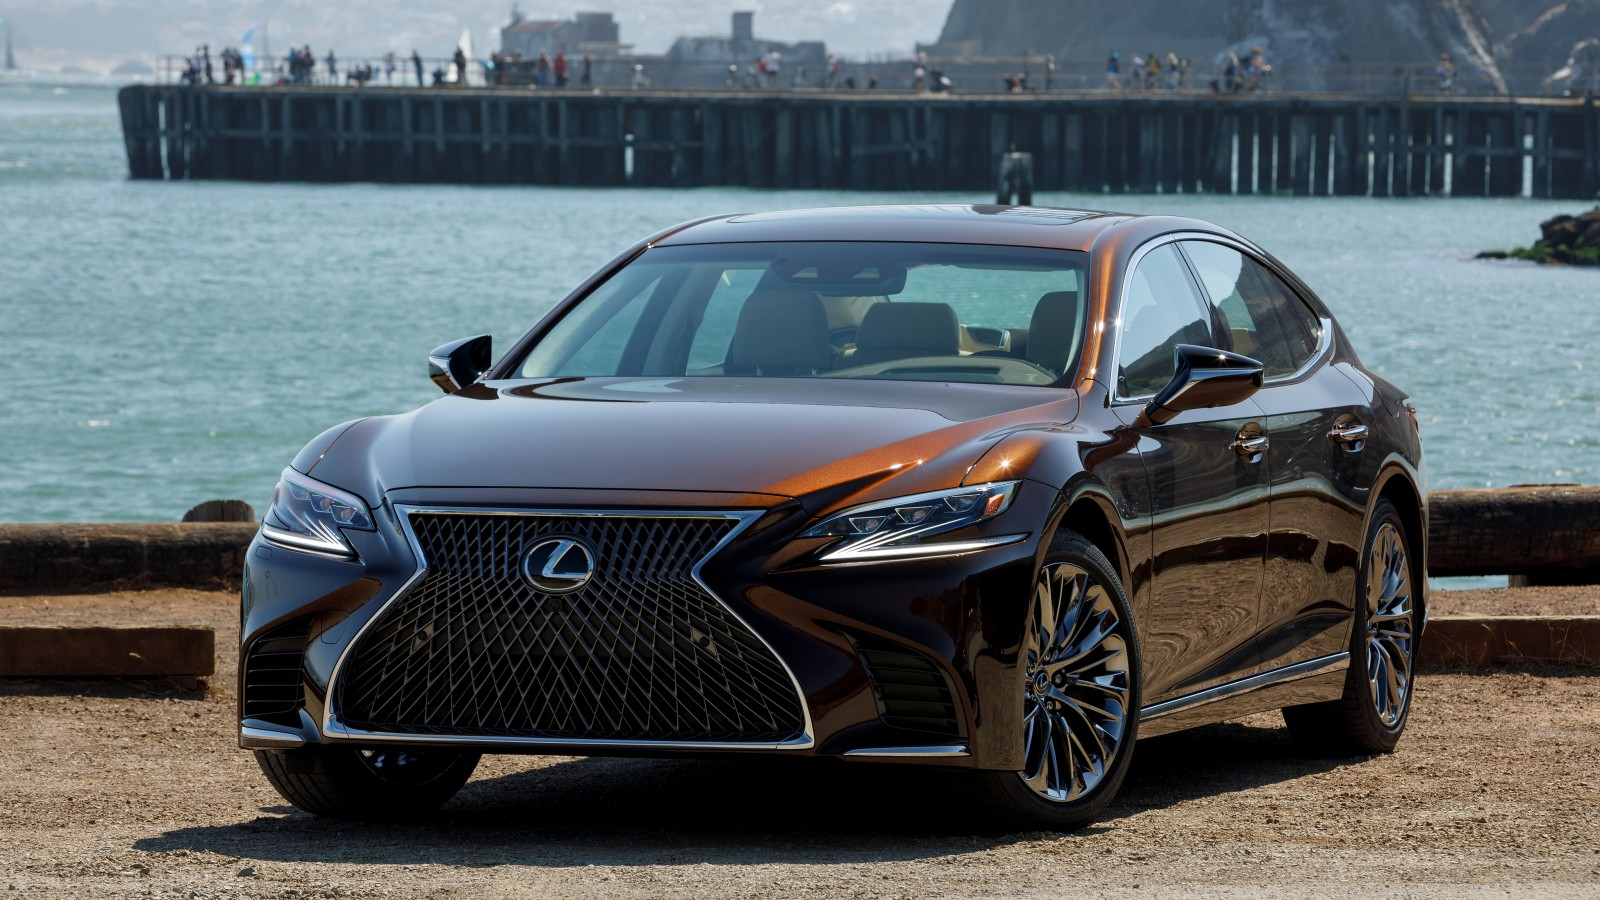 2018 Lexus LS 500 AWD 4K Wallpaper | HD Car Wallpapers ...